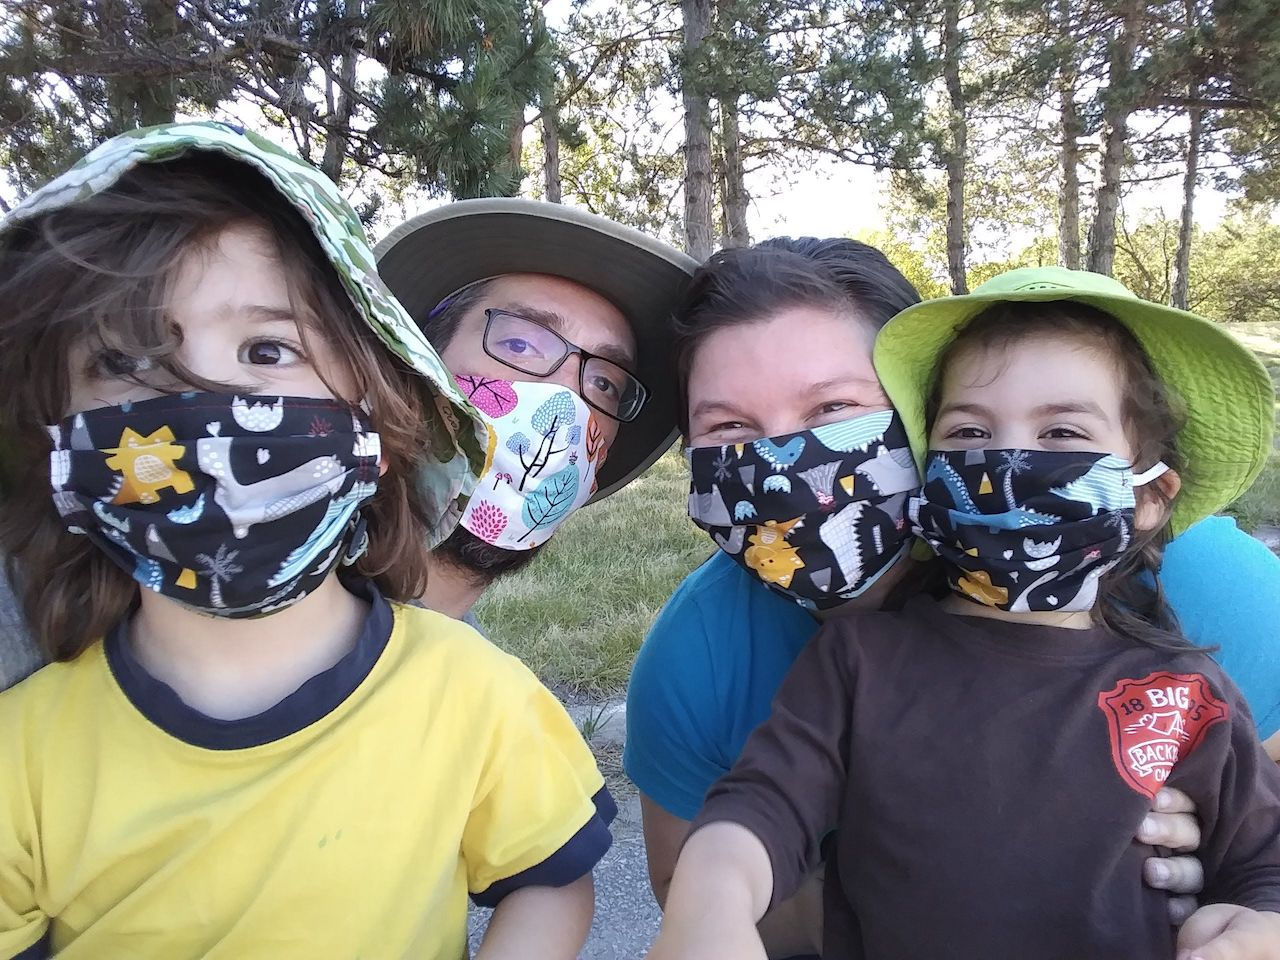 a man, a woman, and two children wearing masks